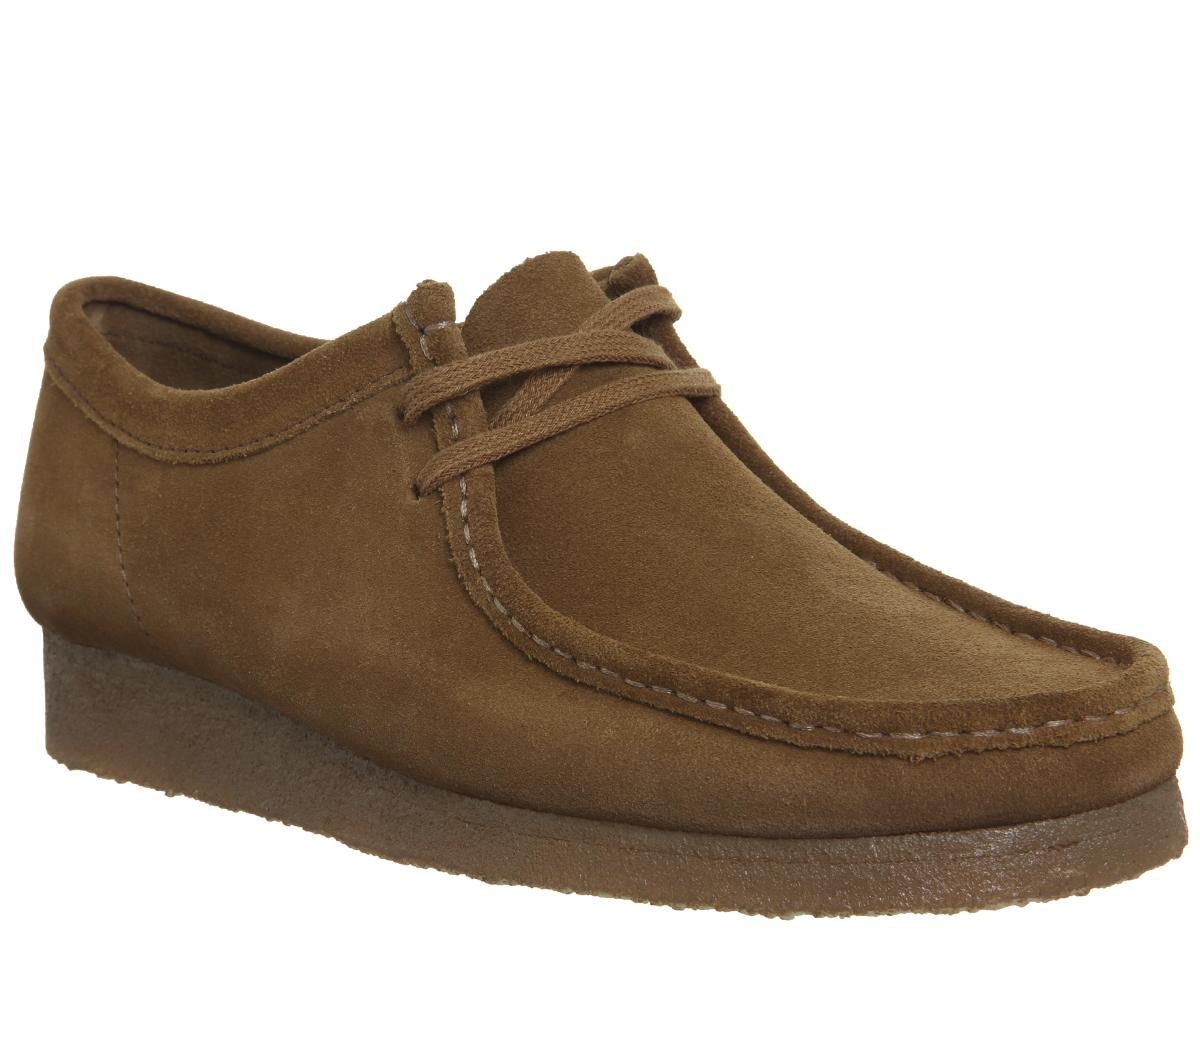 58bb1d38cb2 Mens Clarks Wallabee Shoe Cola Suede New Uk Size 9